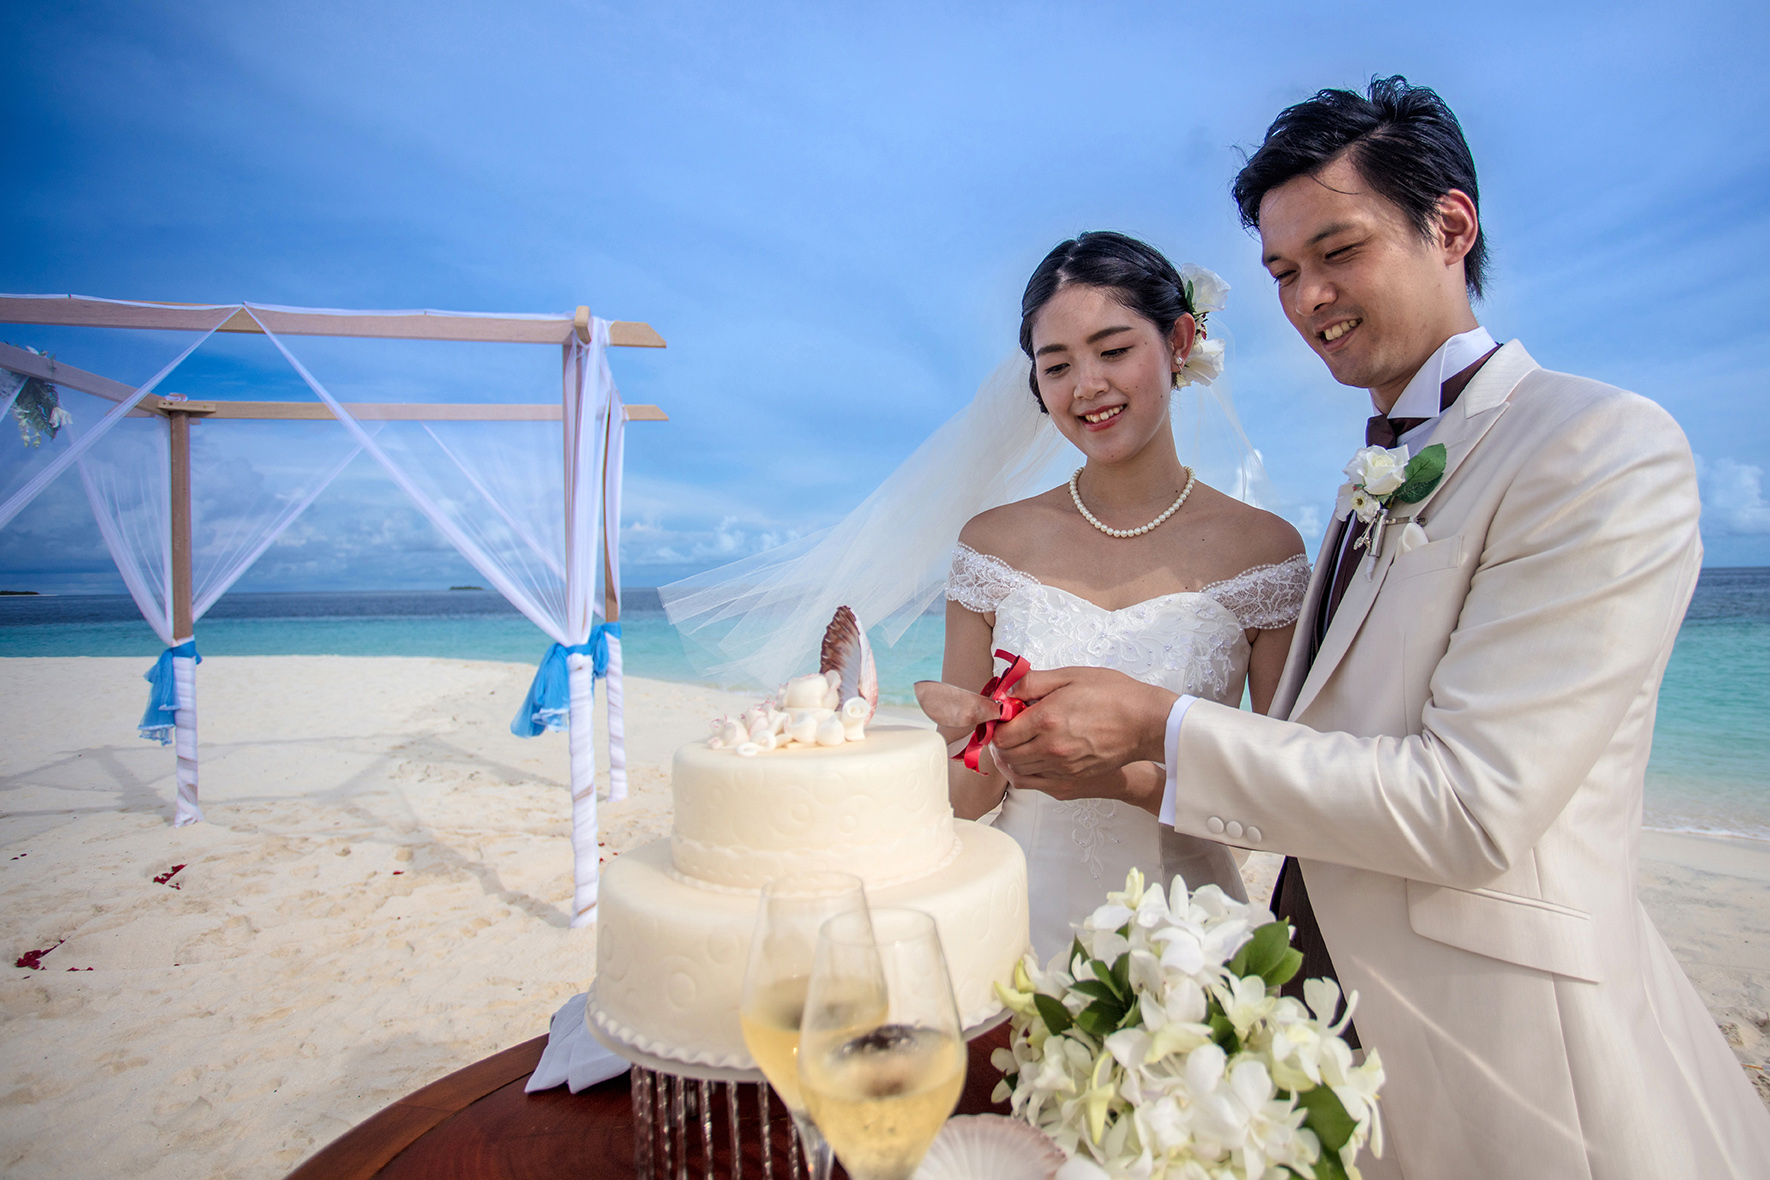 Beach wedding (1)